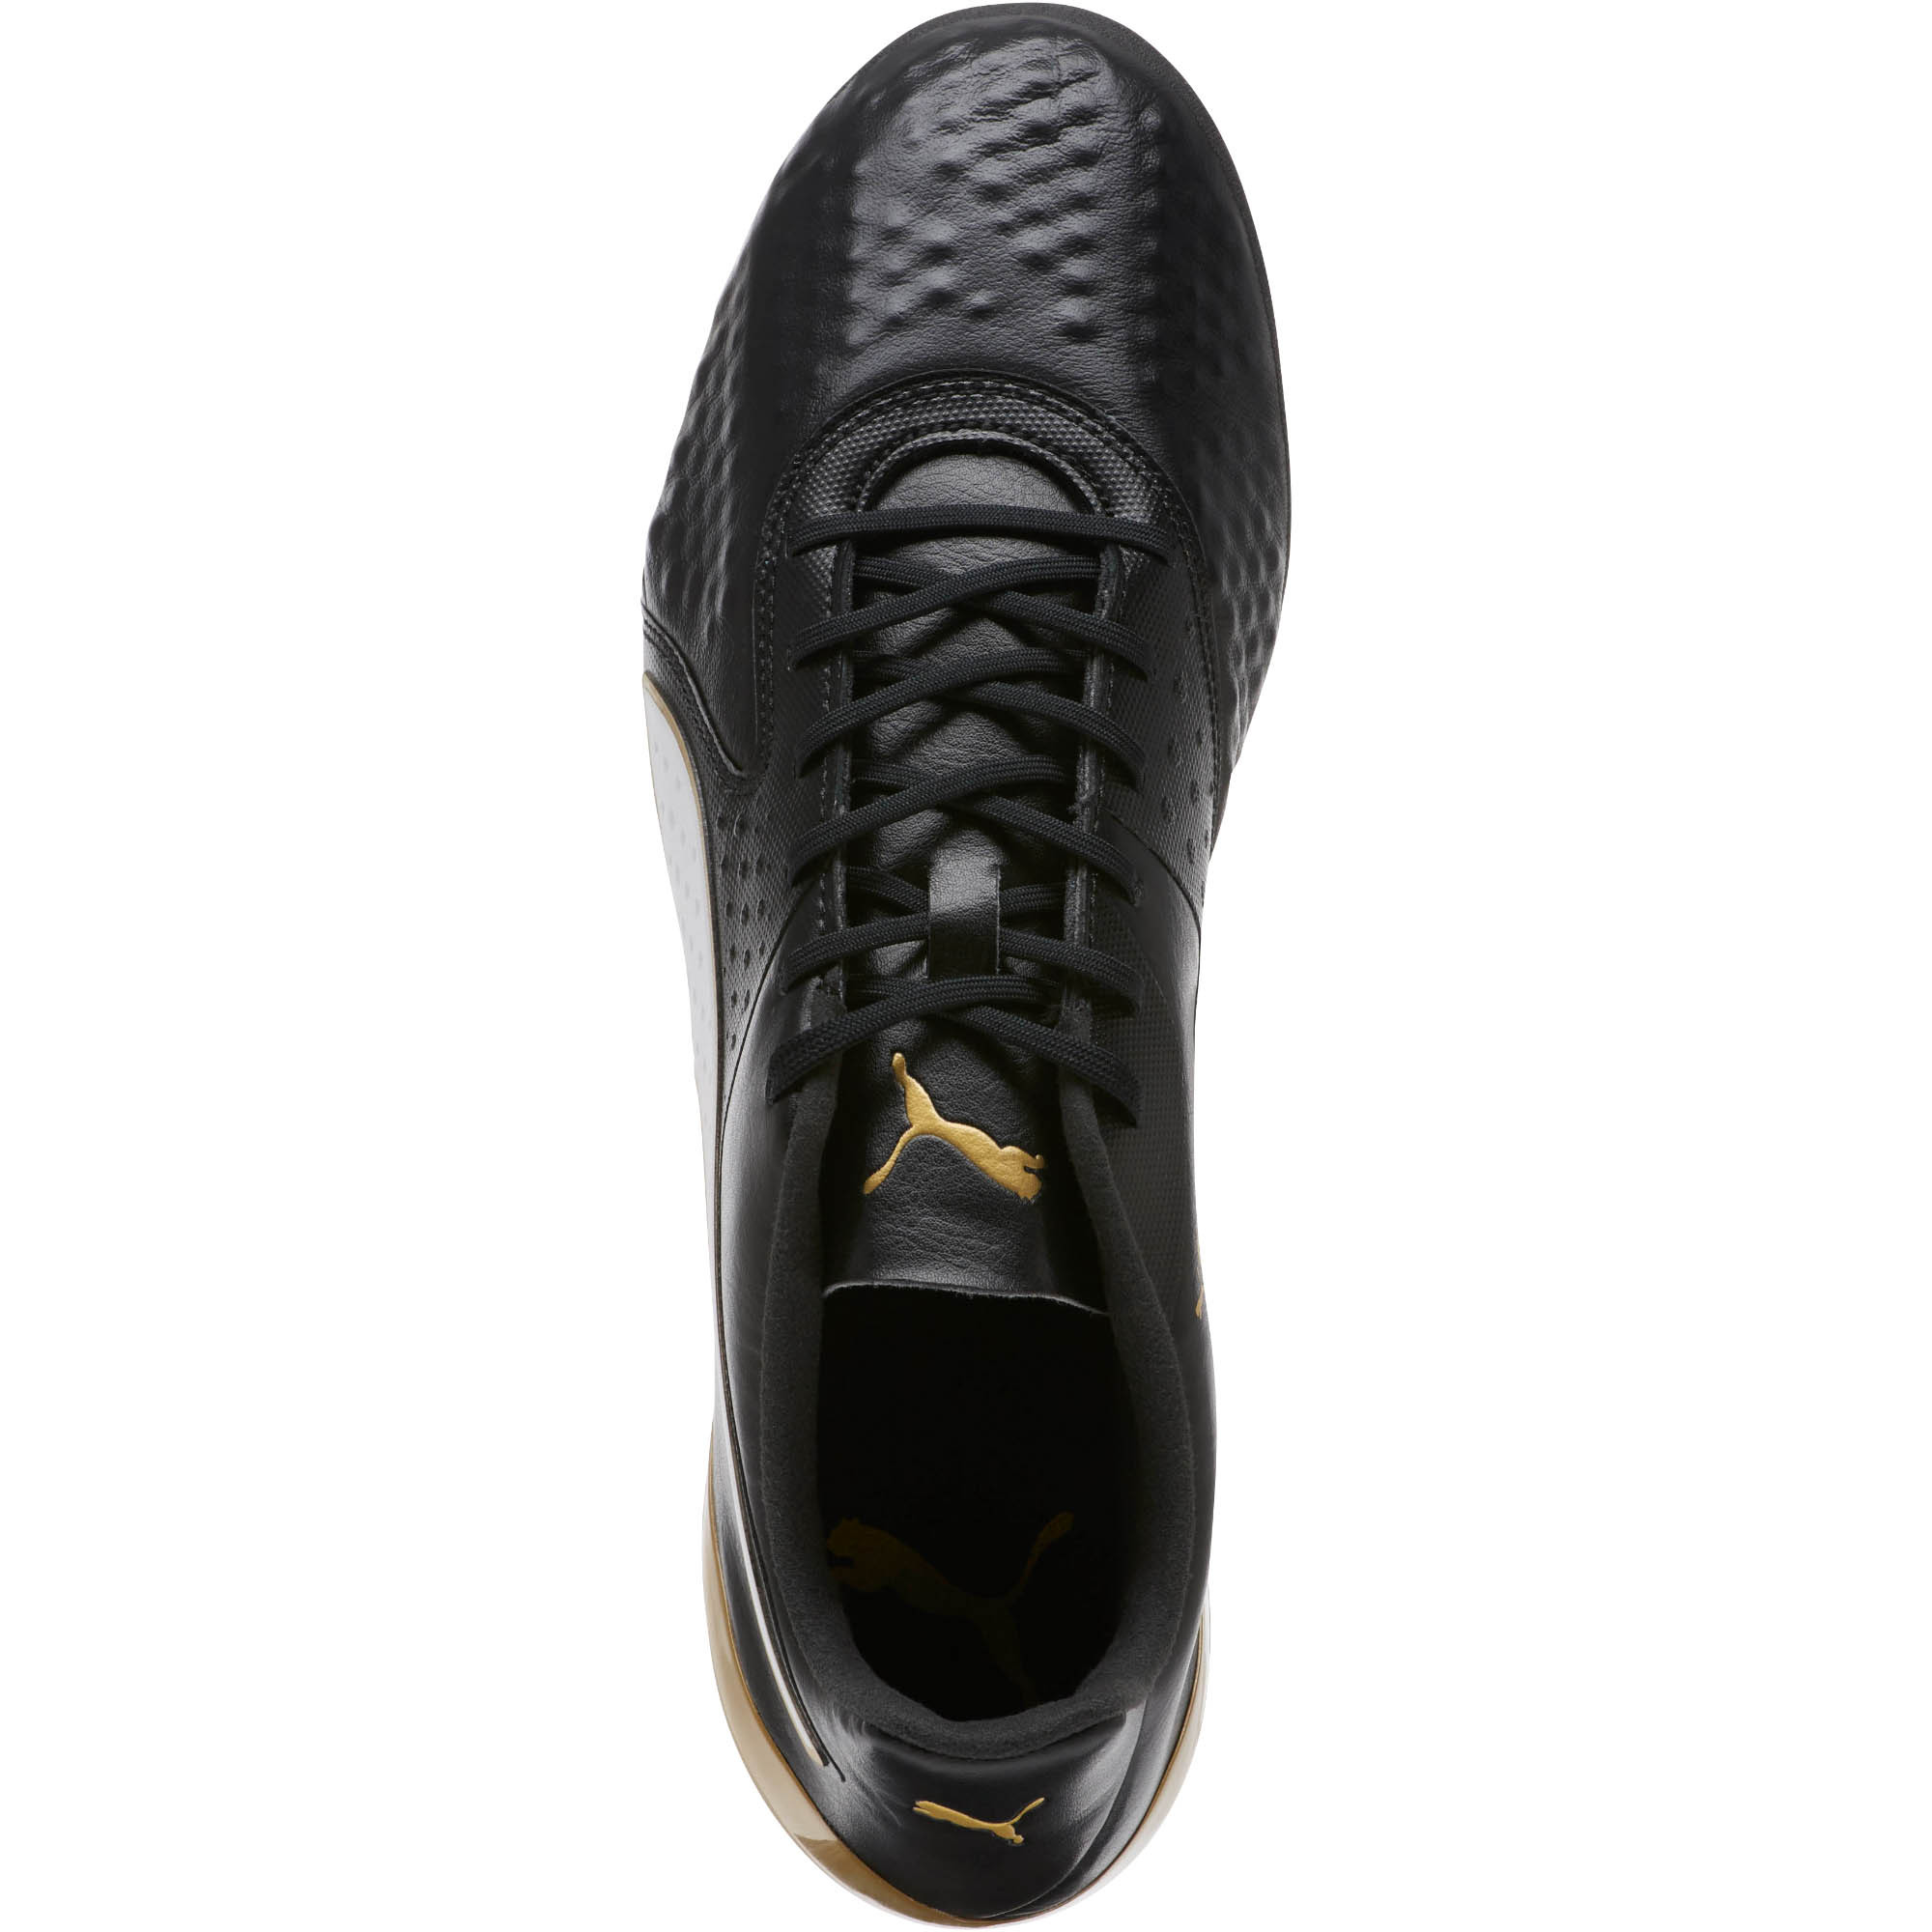 Image Puma PUMA ONE 1 Leather Low FG/AG Men's Football Boots #5